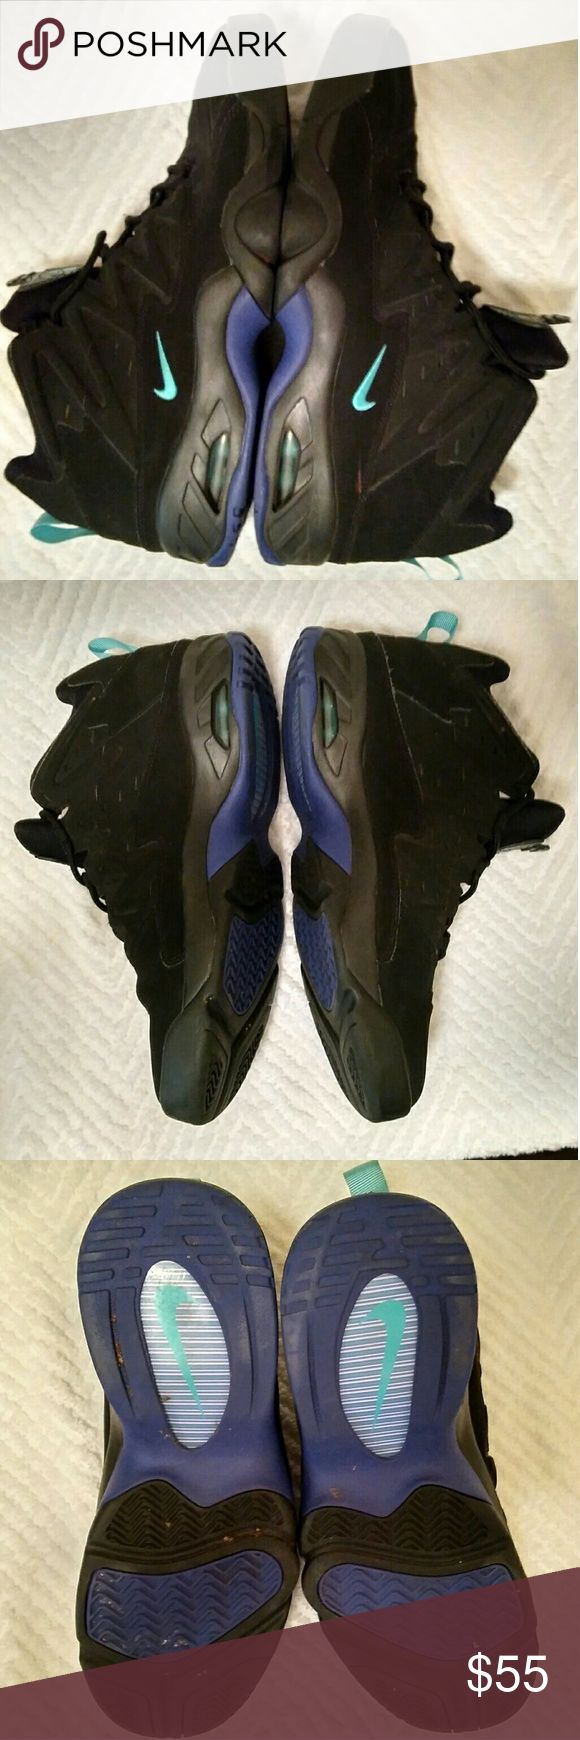 Nike Sportswear Men's Air Flare Basketball Shoe In very good preowned condition. Plenty of life left.?  Mid top men's sneaker?? Lace up closure?? Nubuck suede?? Contrasting NIKE swoosh detail?? Air bubble sole for ultimate comfort?? Slit cutouts for ventilation Nike Shoes